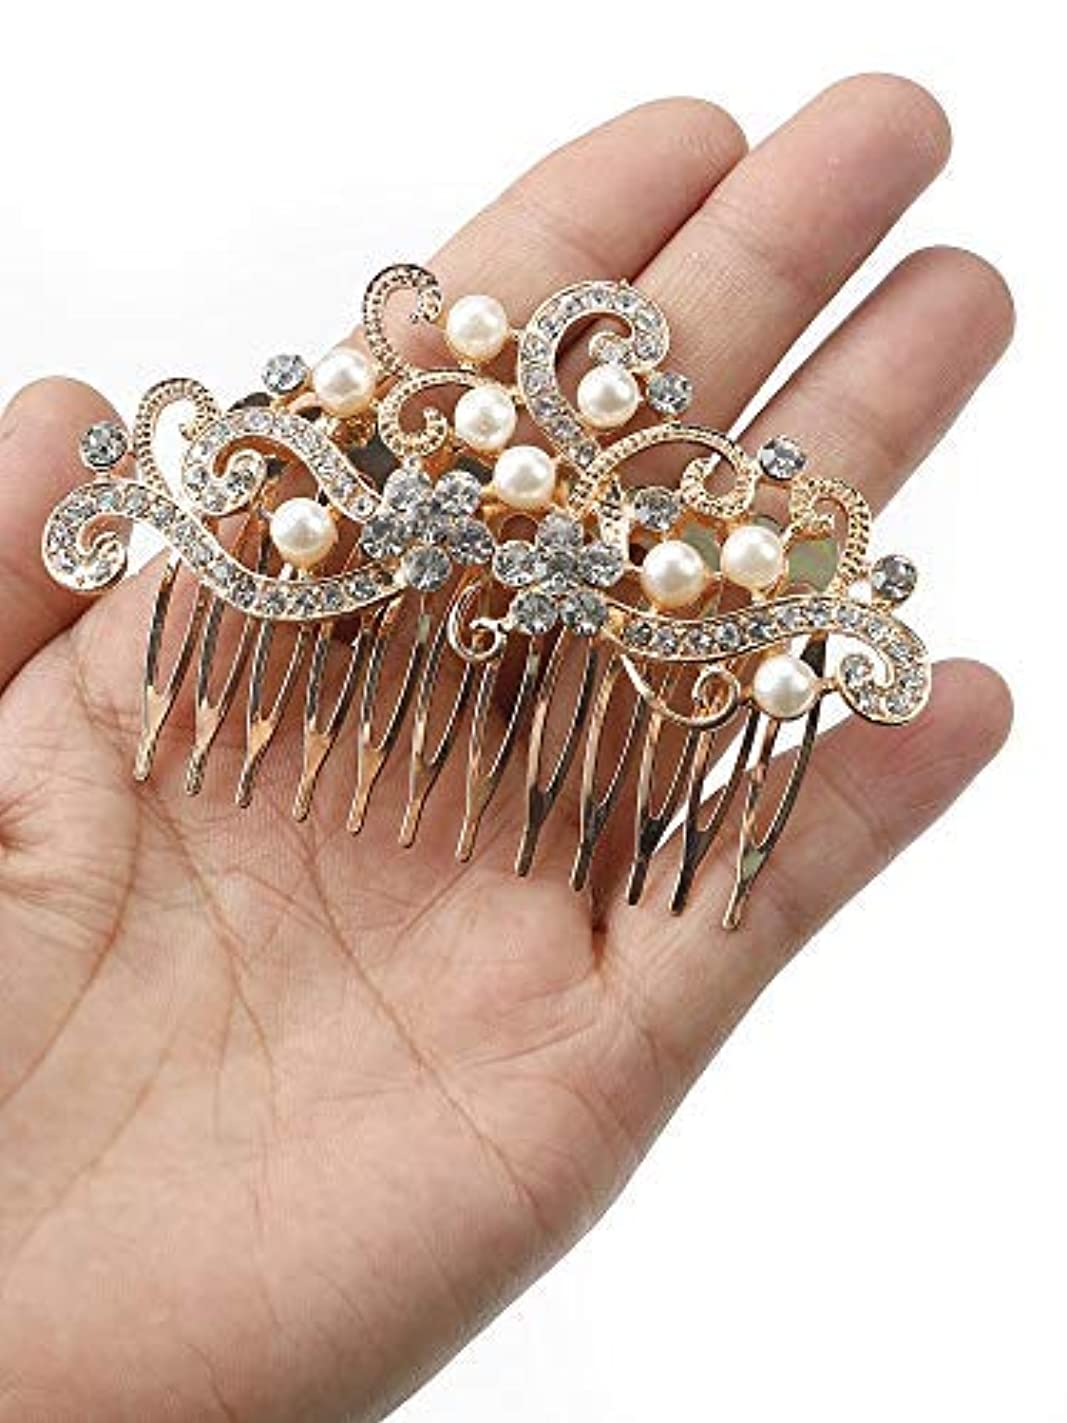 岸まっすぐにするパイントFXmimior Bridal Women Vintage Wedding Party Crystal Rhinestone Vintage Hair Comb Hair Accessories (GOLD) [並行輸入品]